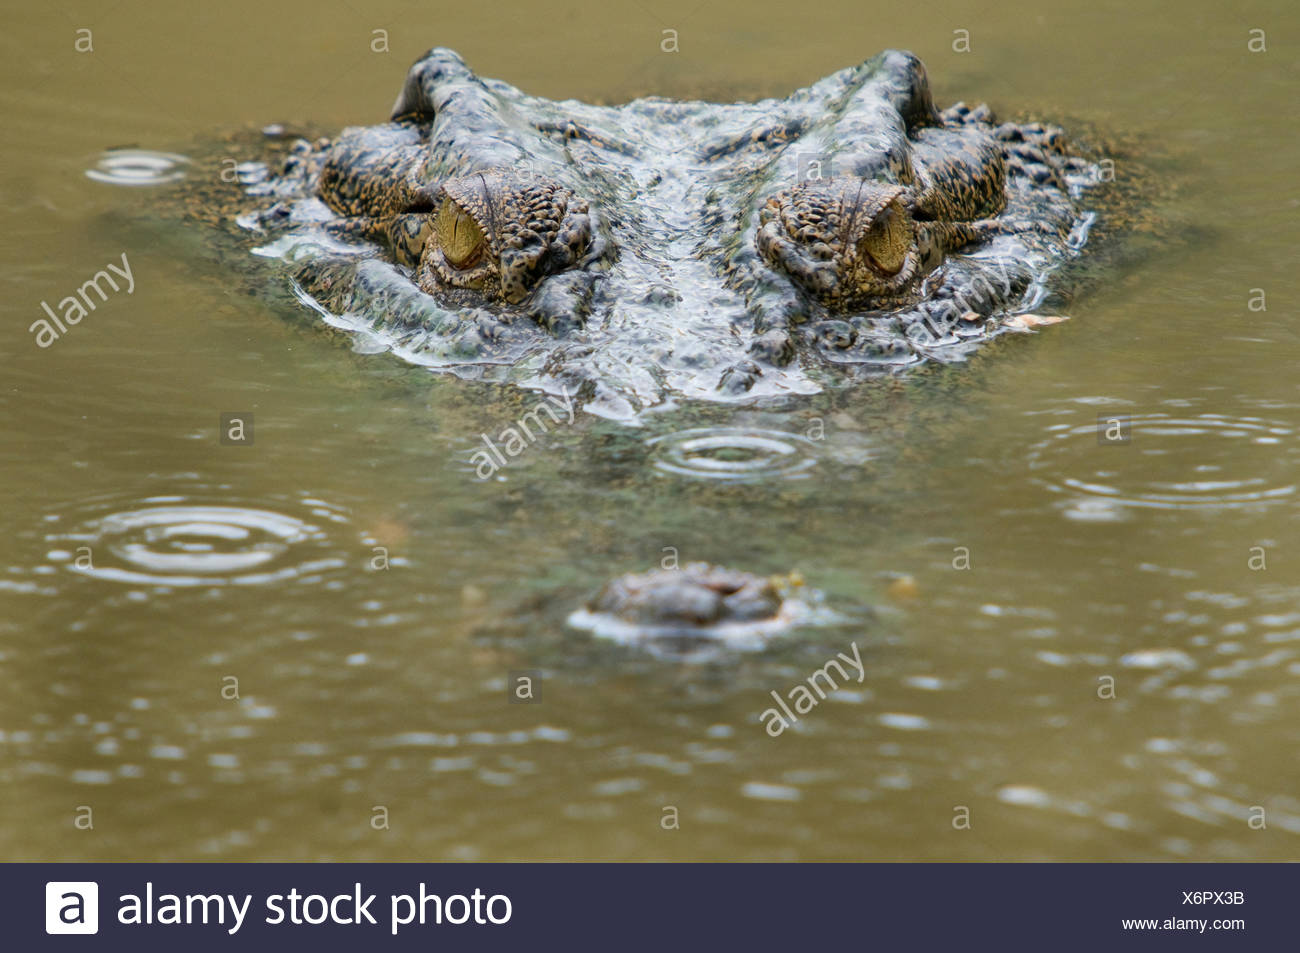 Saltwater crocodile (Crocodylus porosus) partially submerged with ripples on water from raindrops. Sarawak, Borneo, Malaysia. - Stock Image